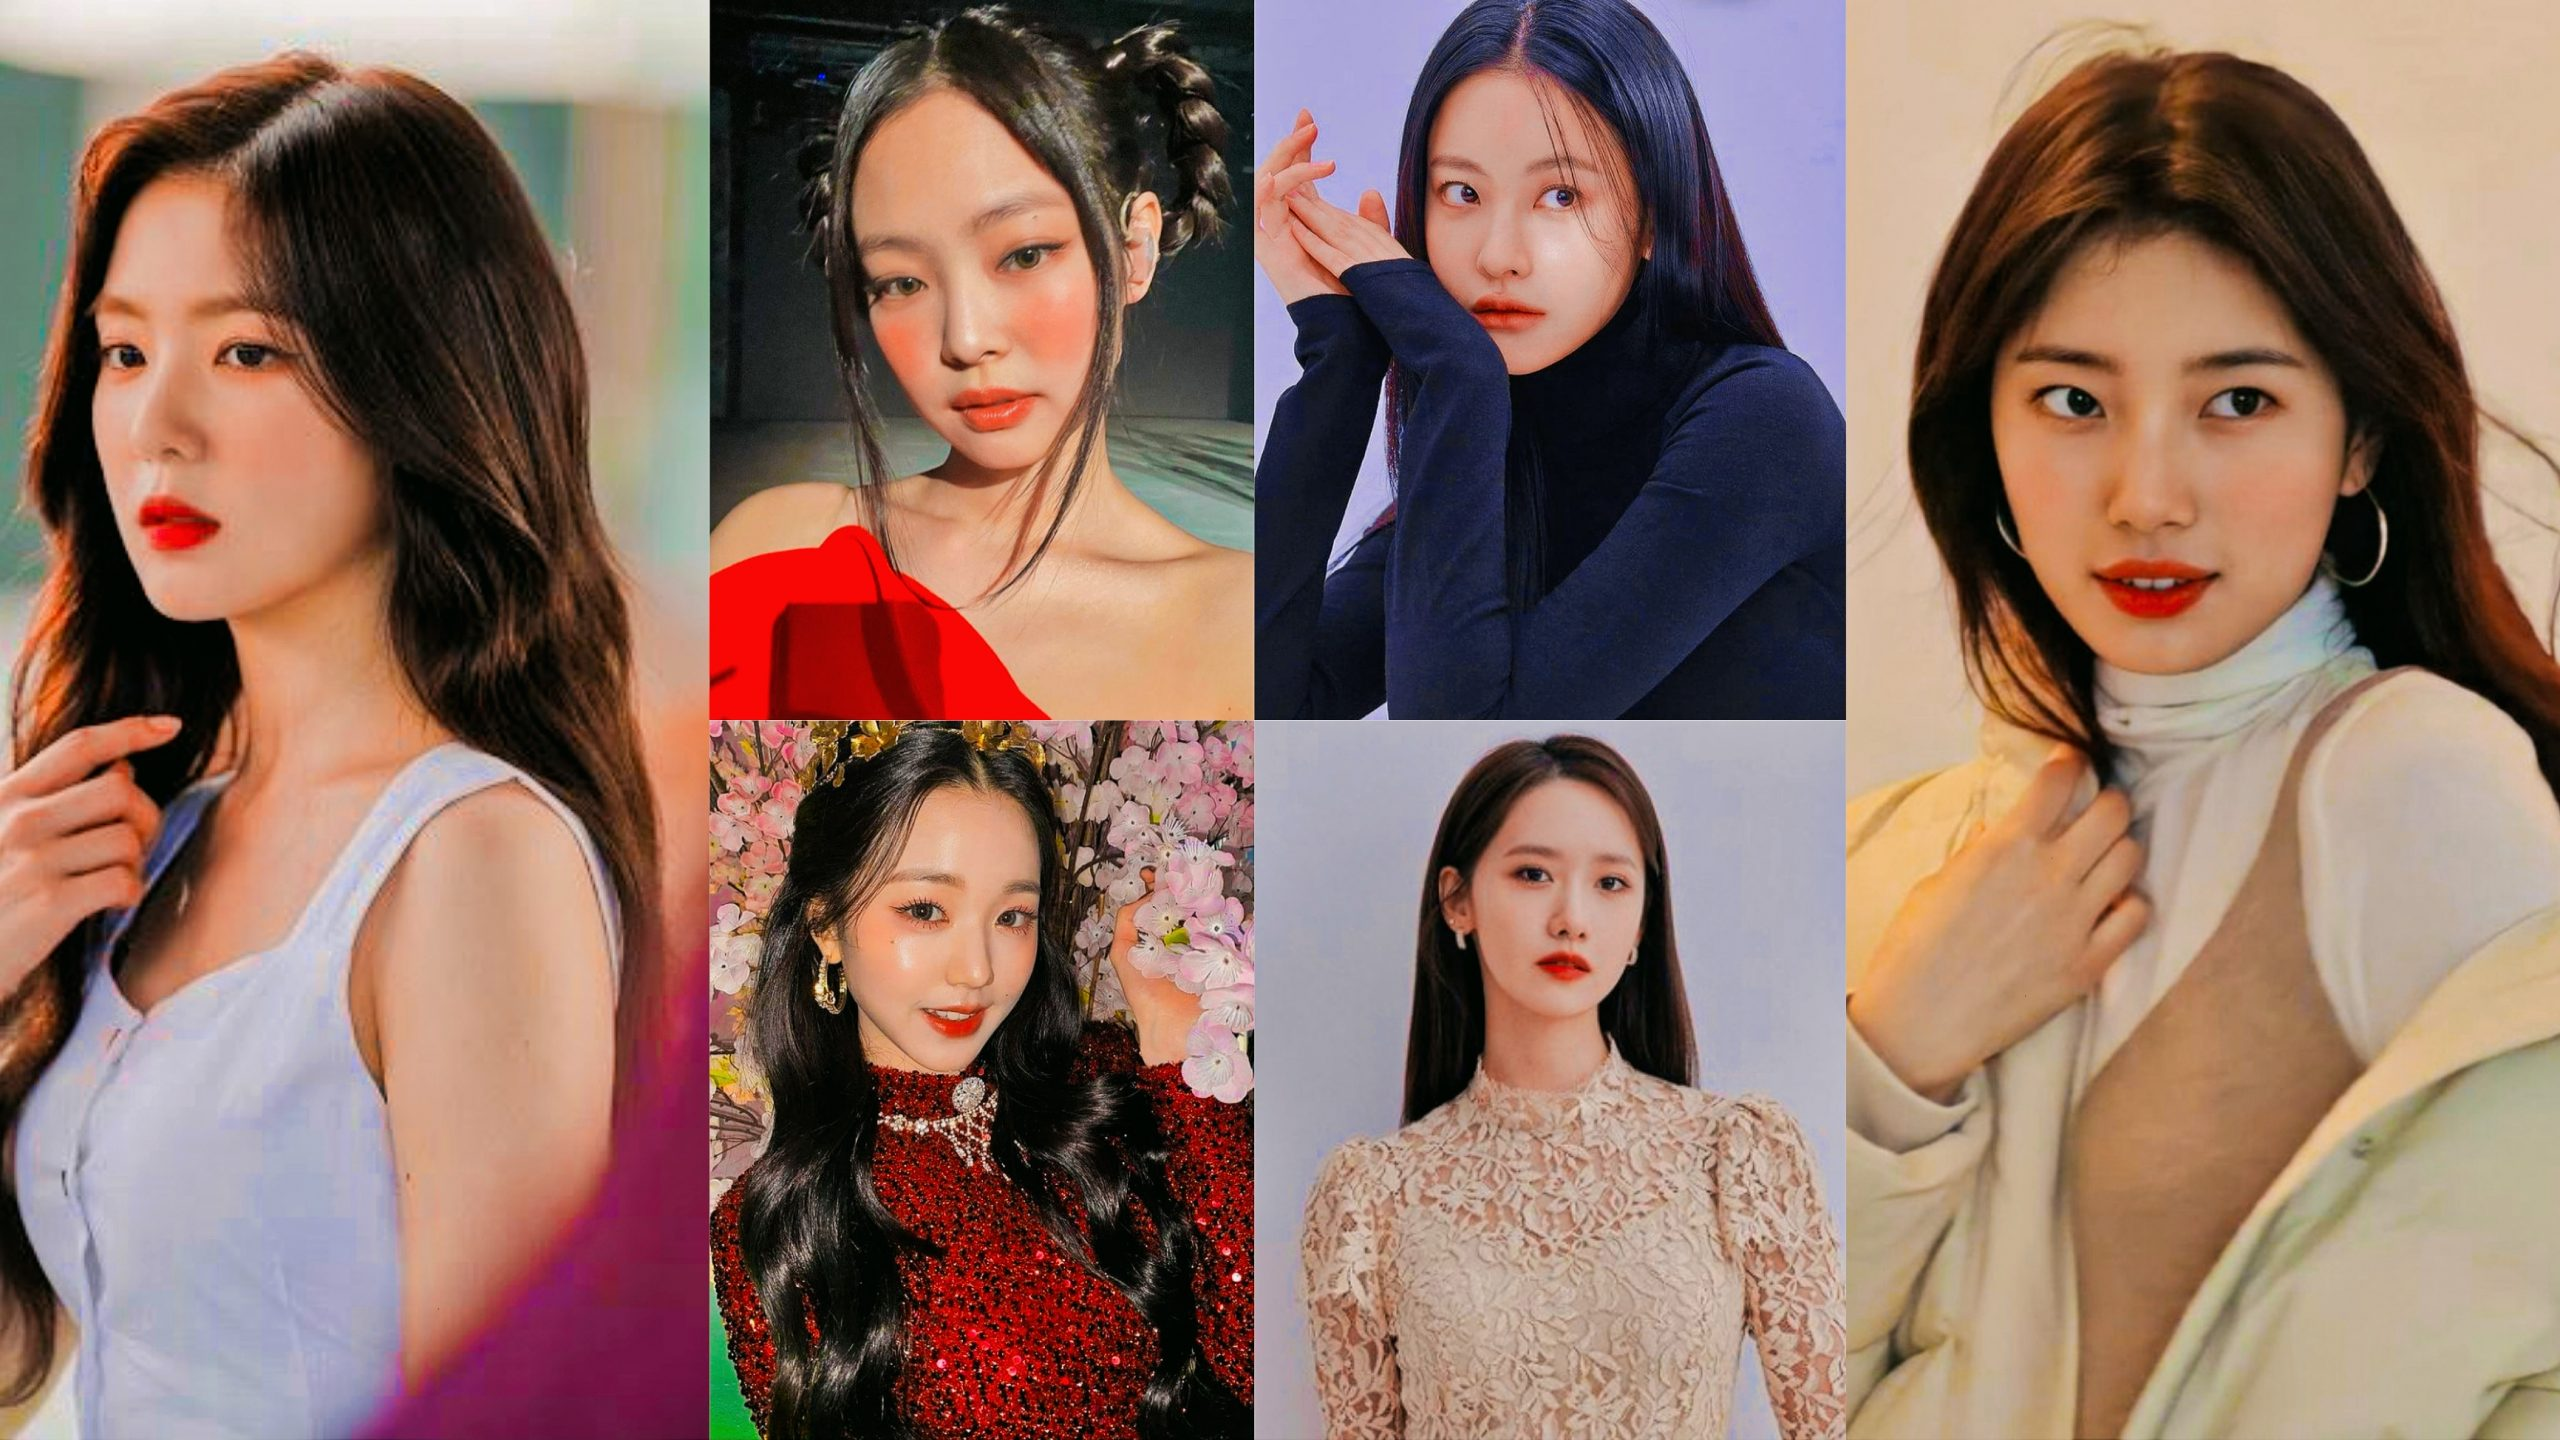 6 Female Korean CelebsThat Plastic Surgeons Believe Have The Best Faces